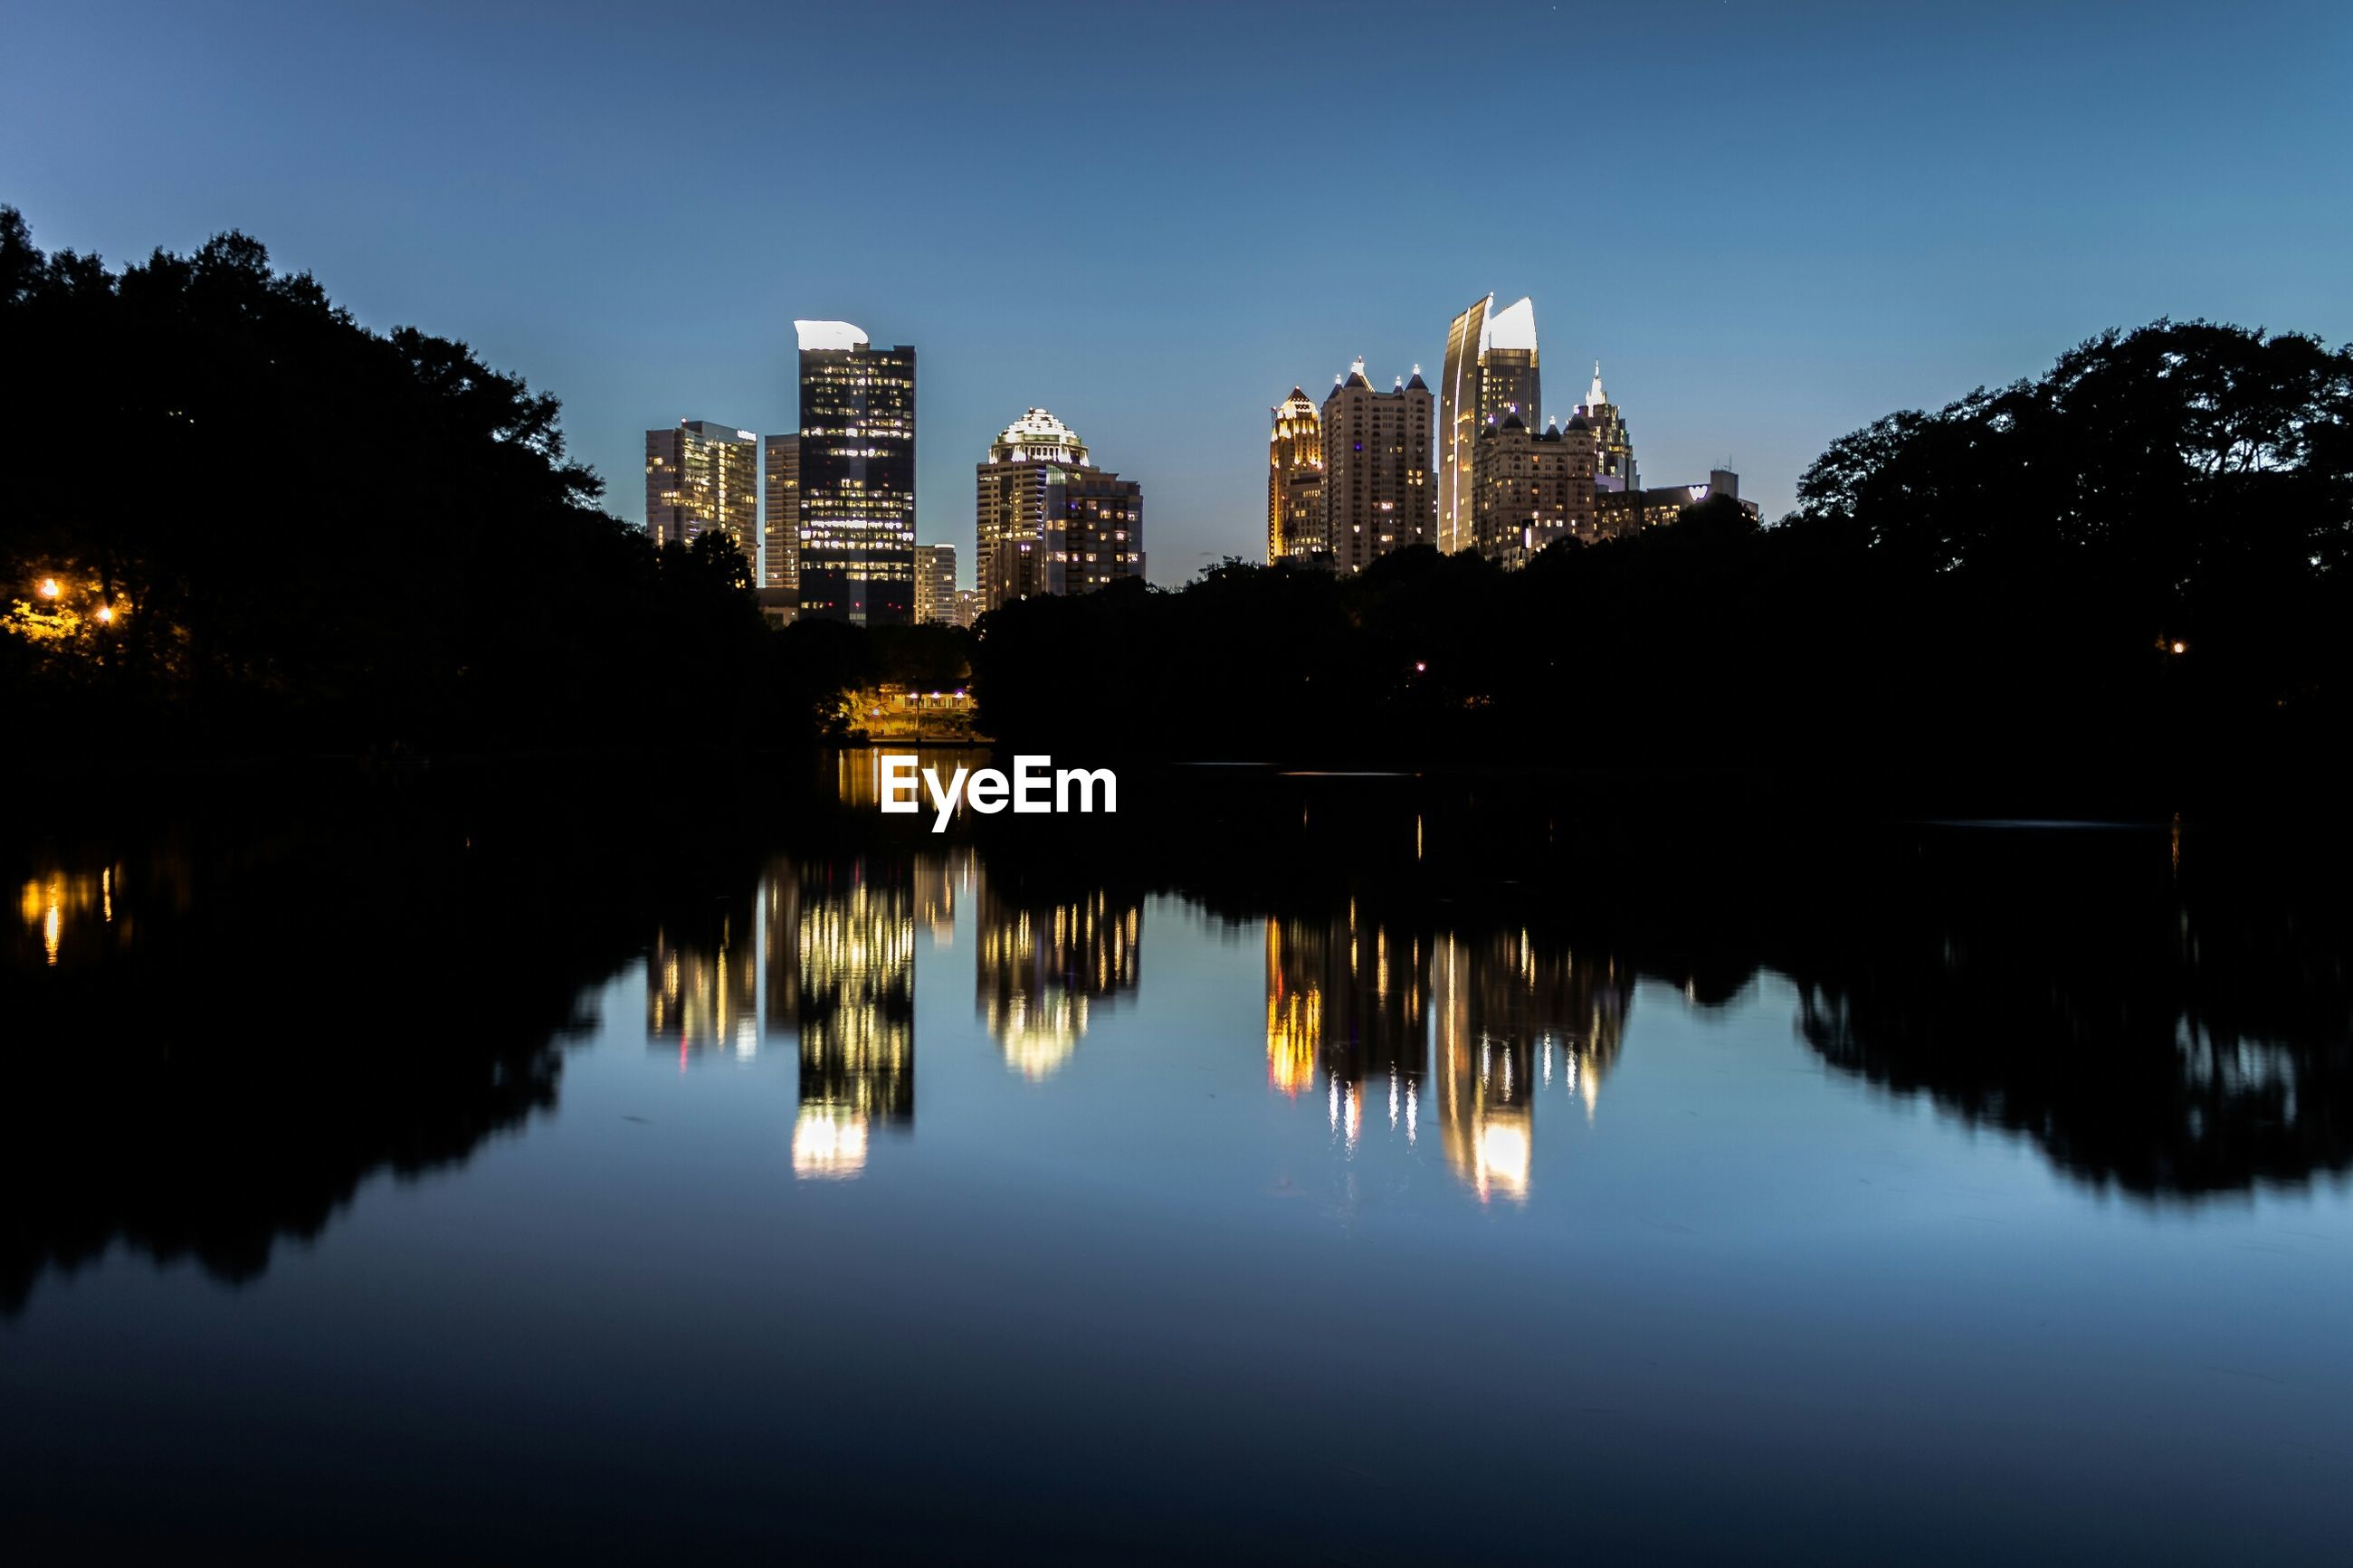 Reflection of skyline in piedmont park lake against clear sky